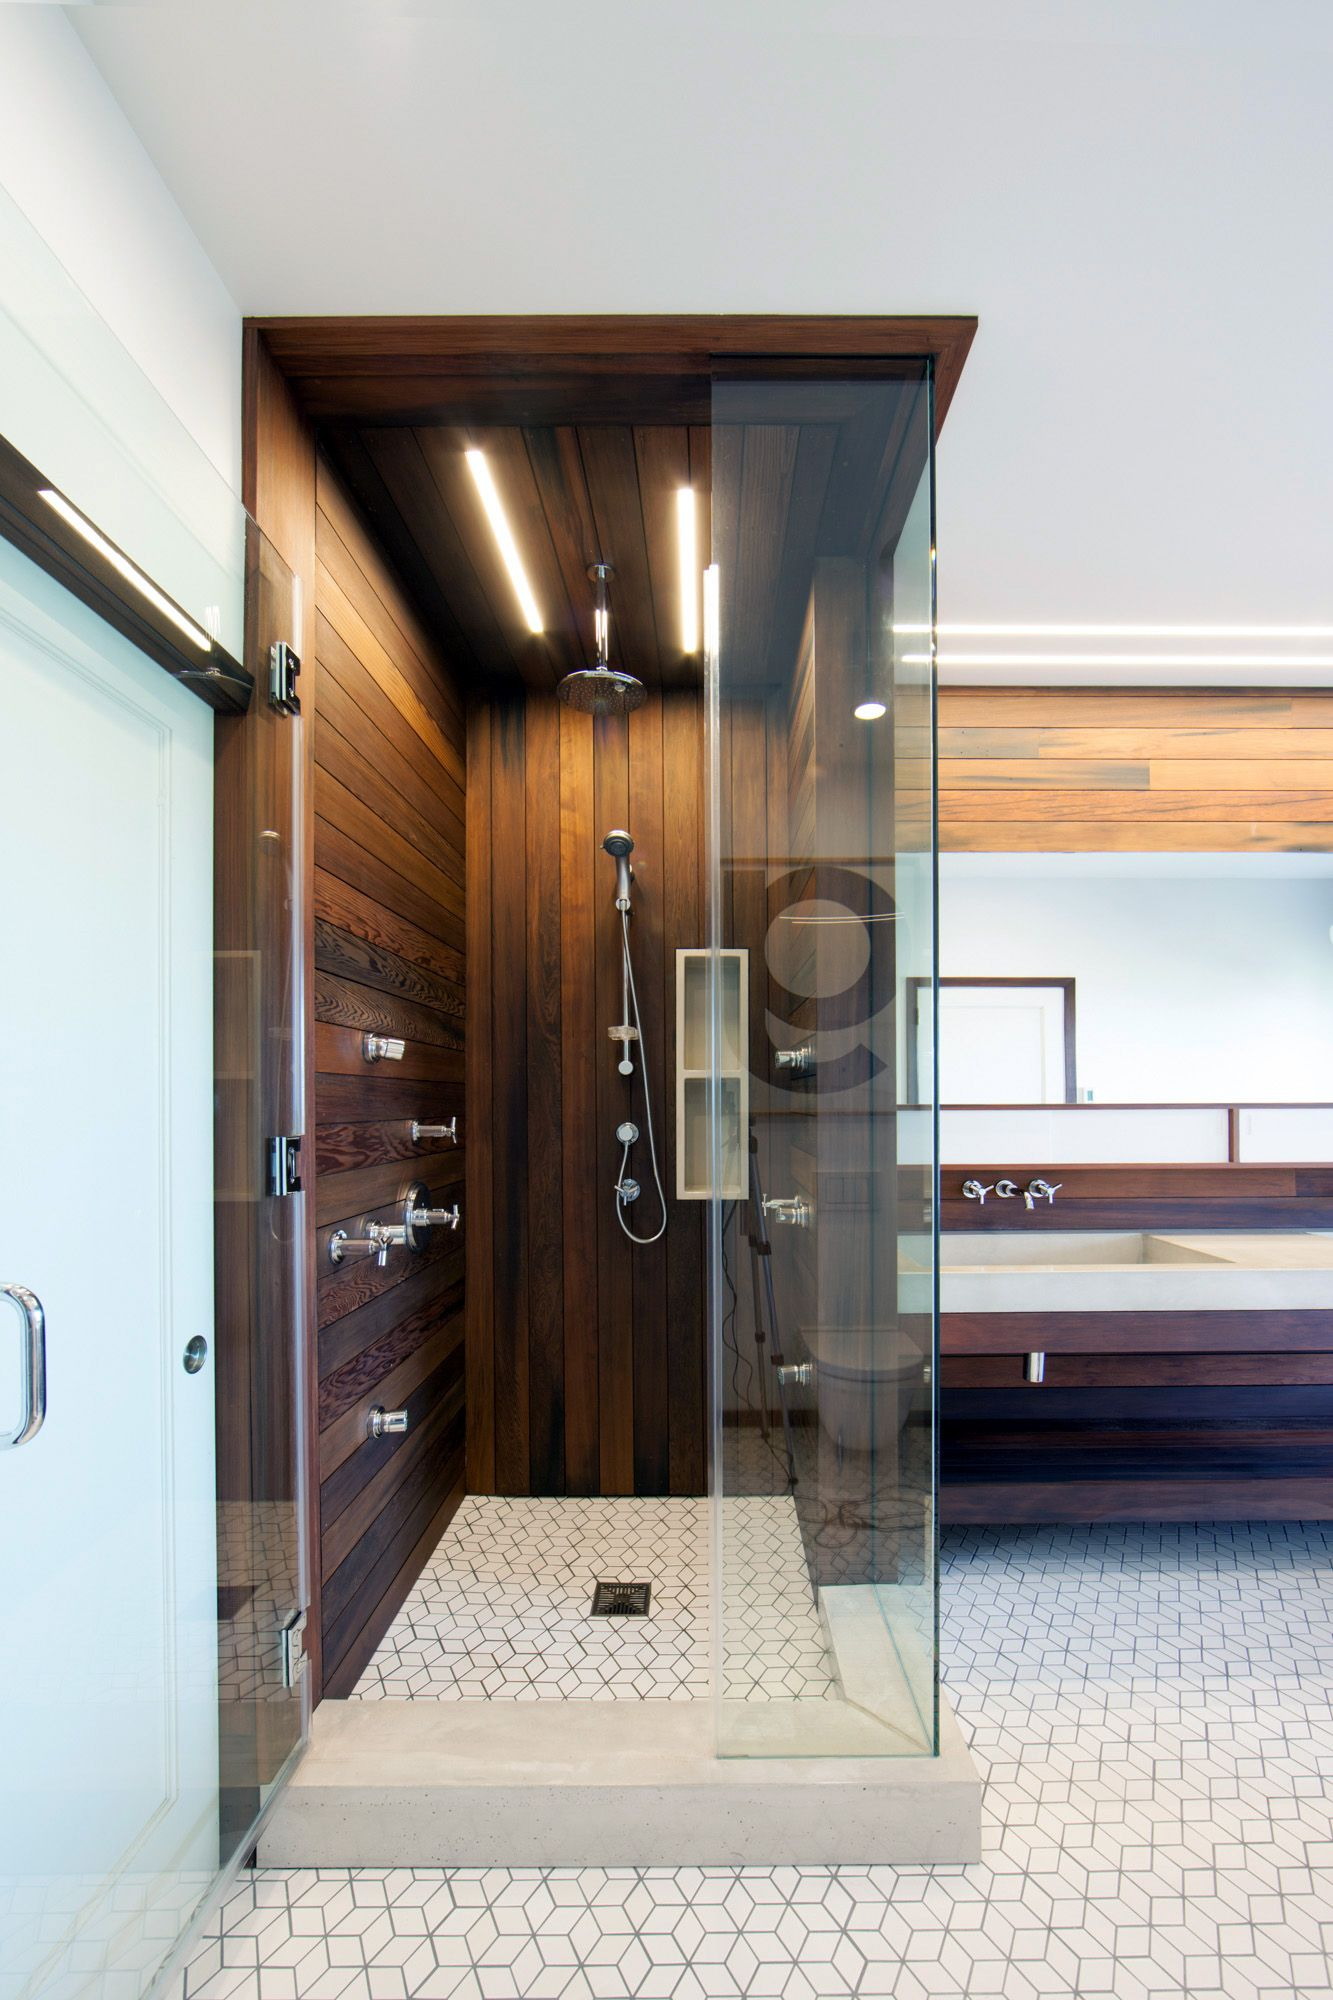 Bathroom Design San Francisco Beauteous San Francisco Bathroom Design & Build Knife 12 & Saw  Arcson Inspiration